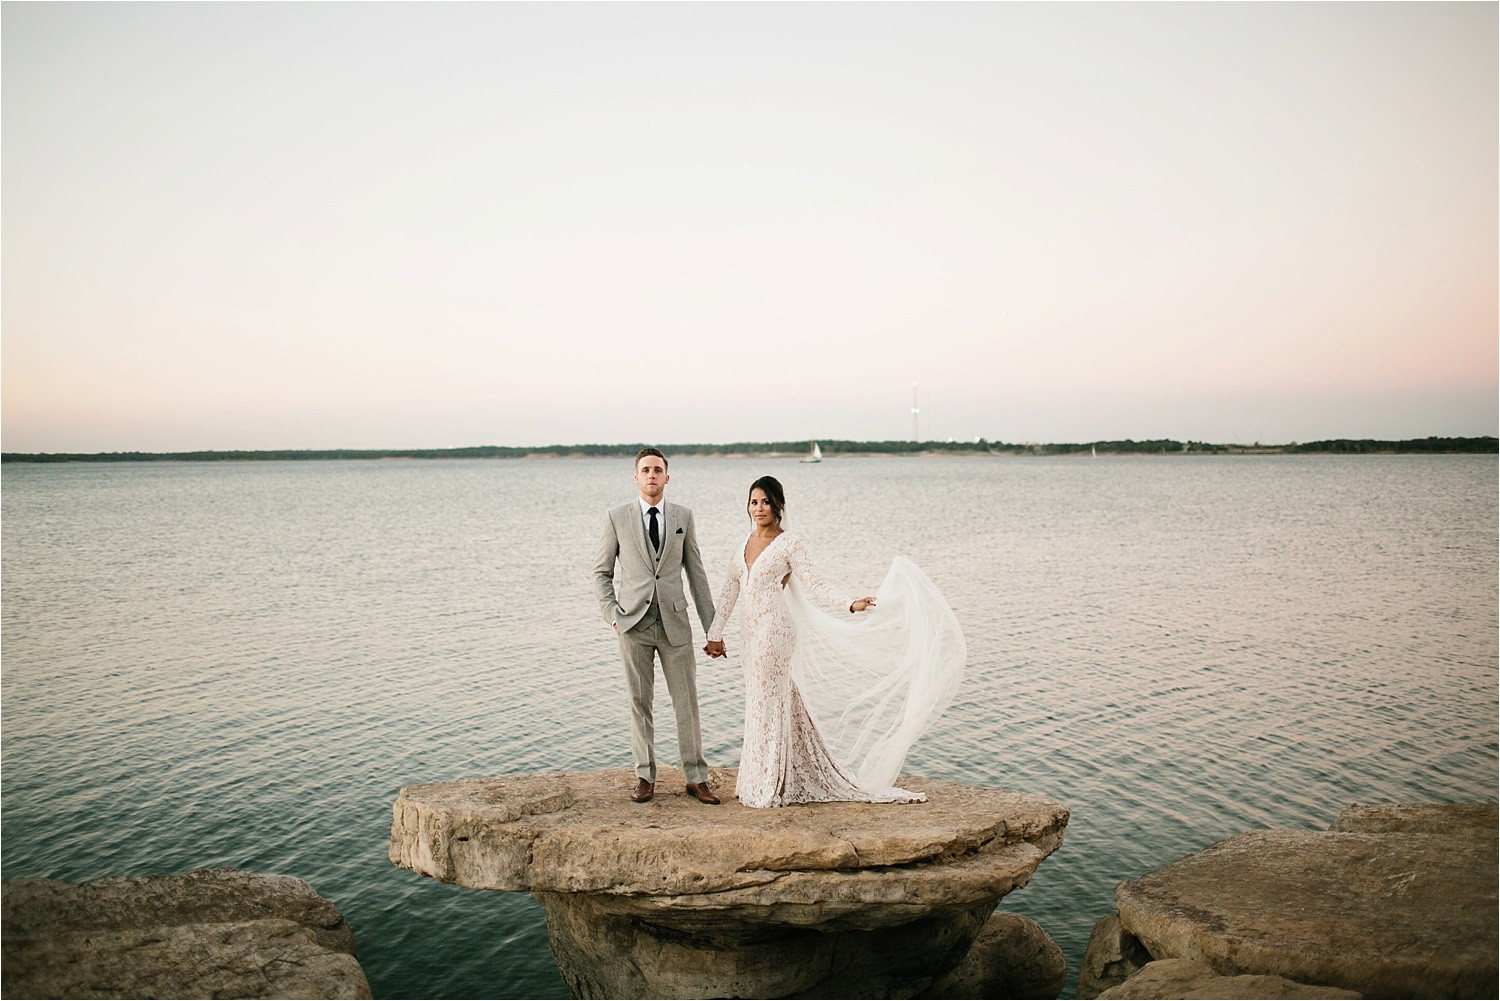 mallory-tyler-__-an-intimate-after-session-at-grapevine-lake-by-north-texas-wedding-photographer-rachel-meagan-photography-_-48